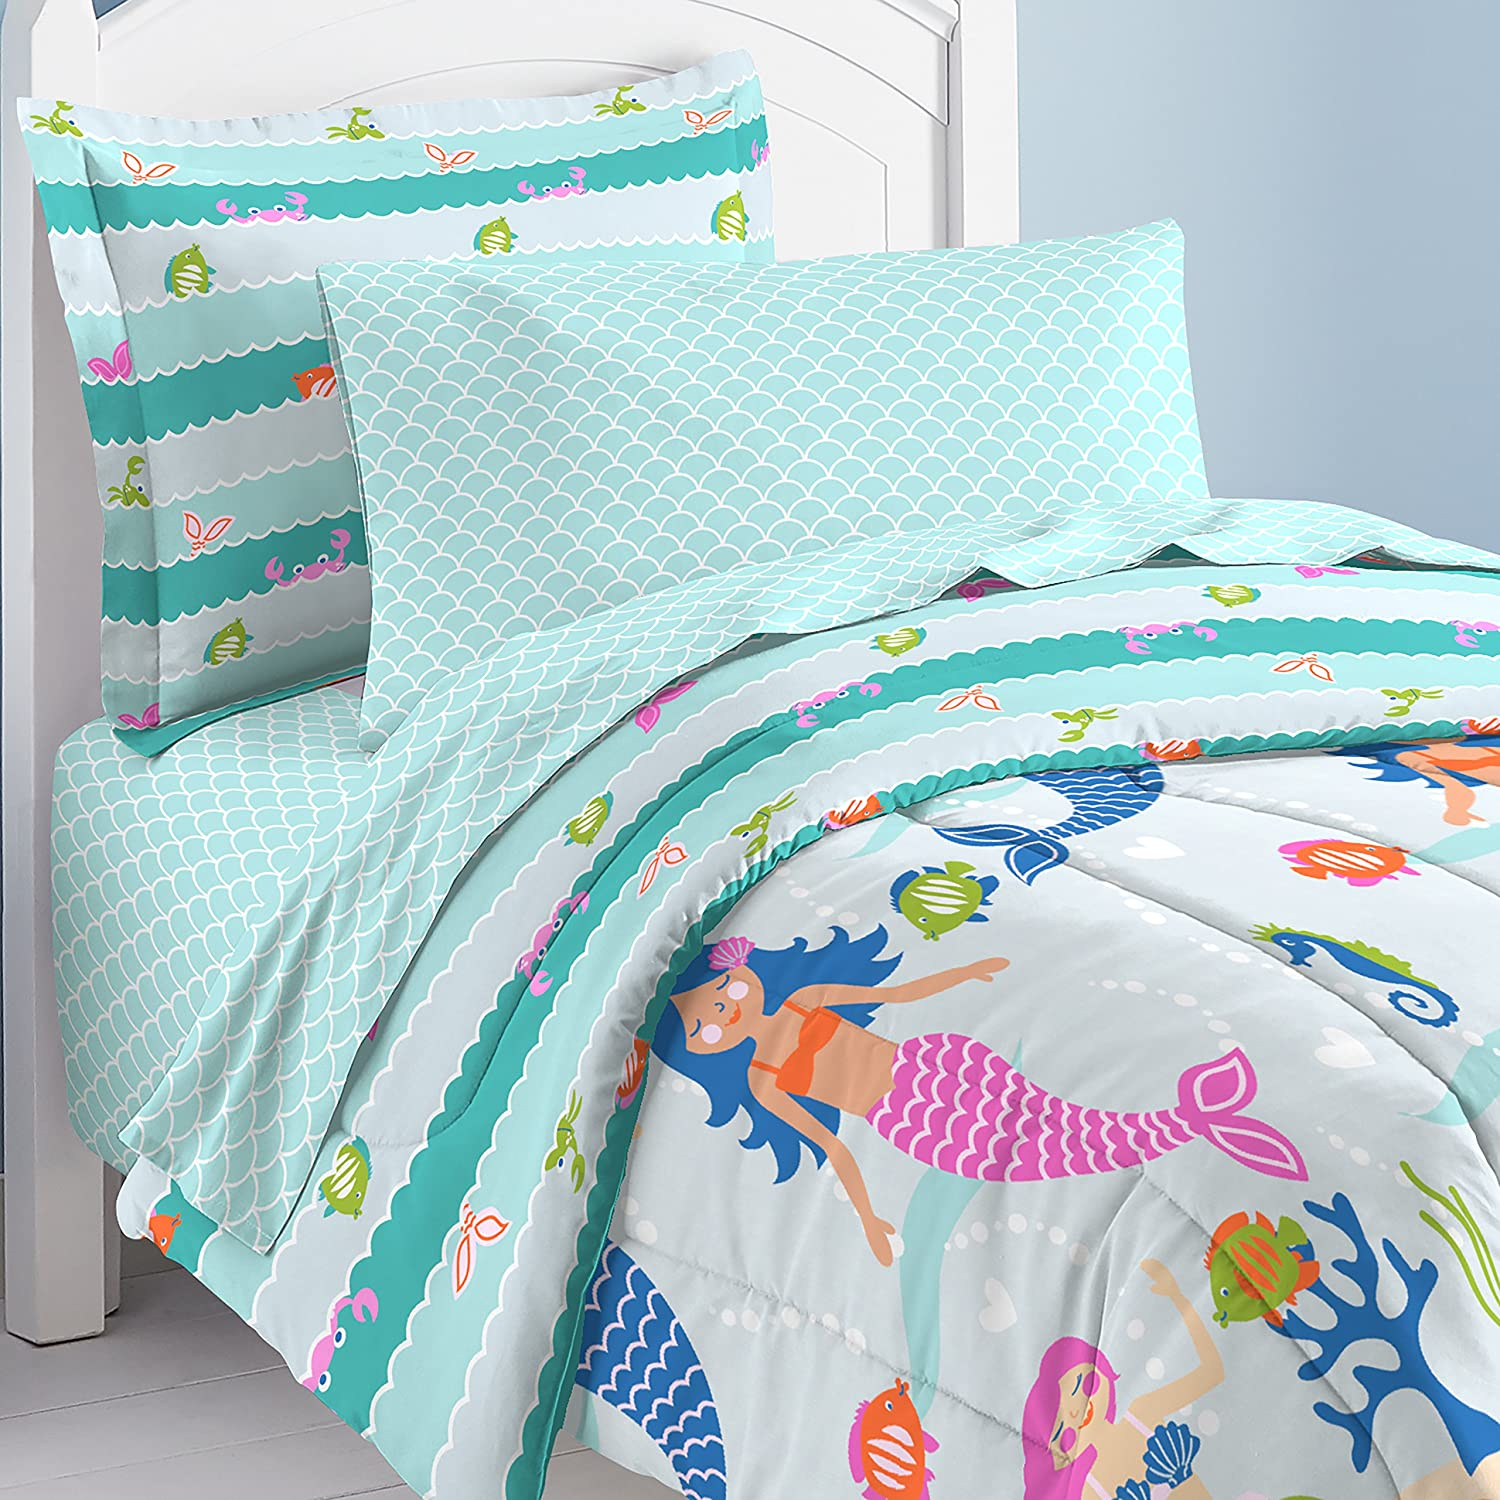 Top 10 Best Kids Bedding Sets 2020 For Your Little Ones 1